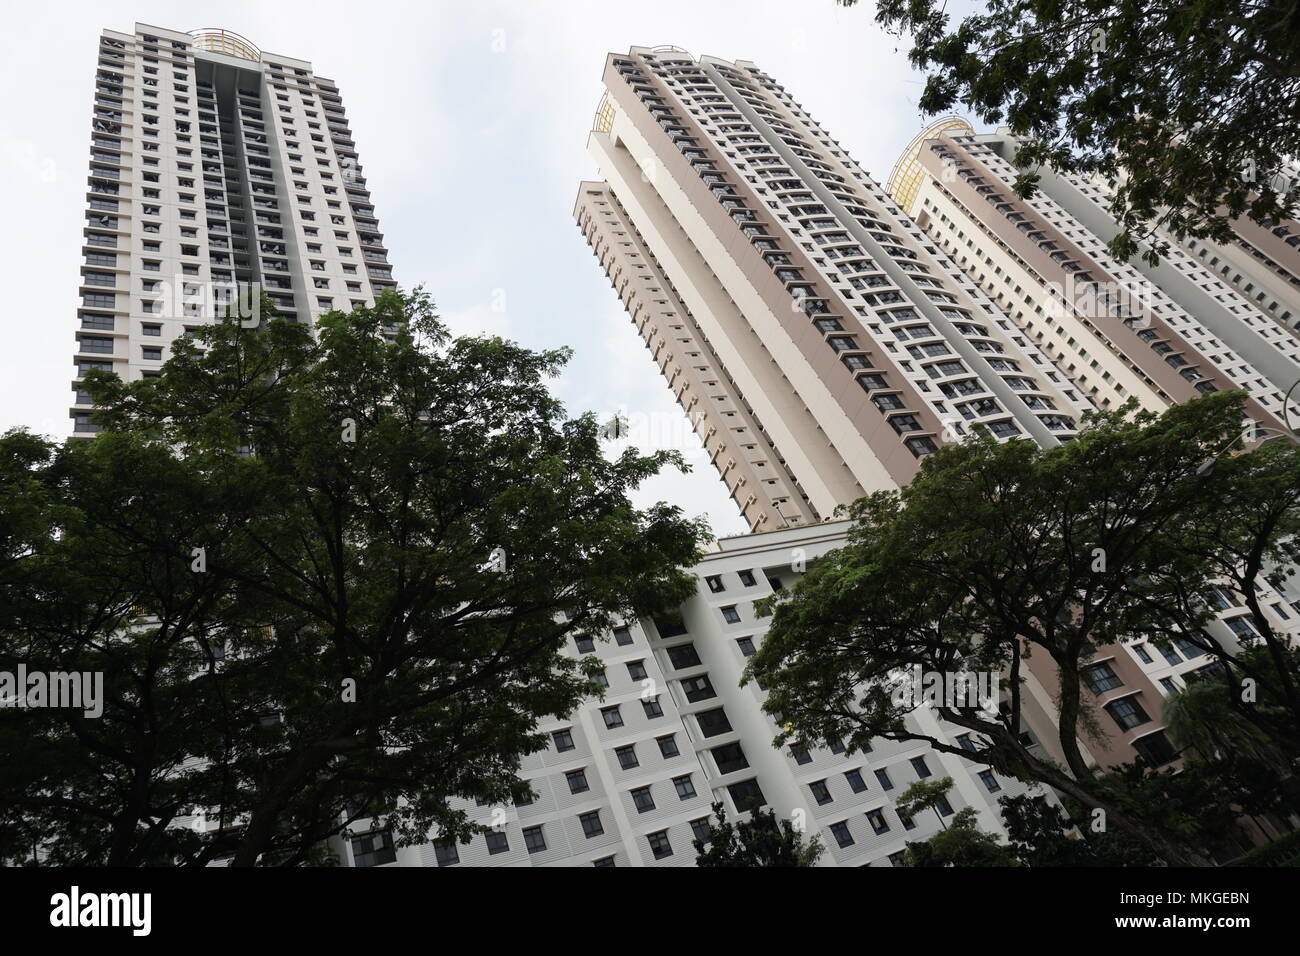 HDB flats in Toa Payoh, Singapore - Stock Image